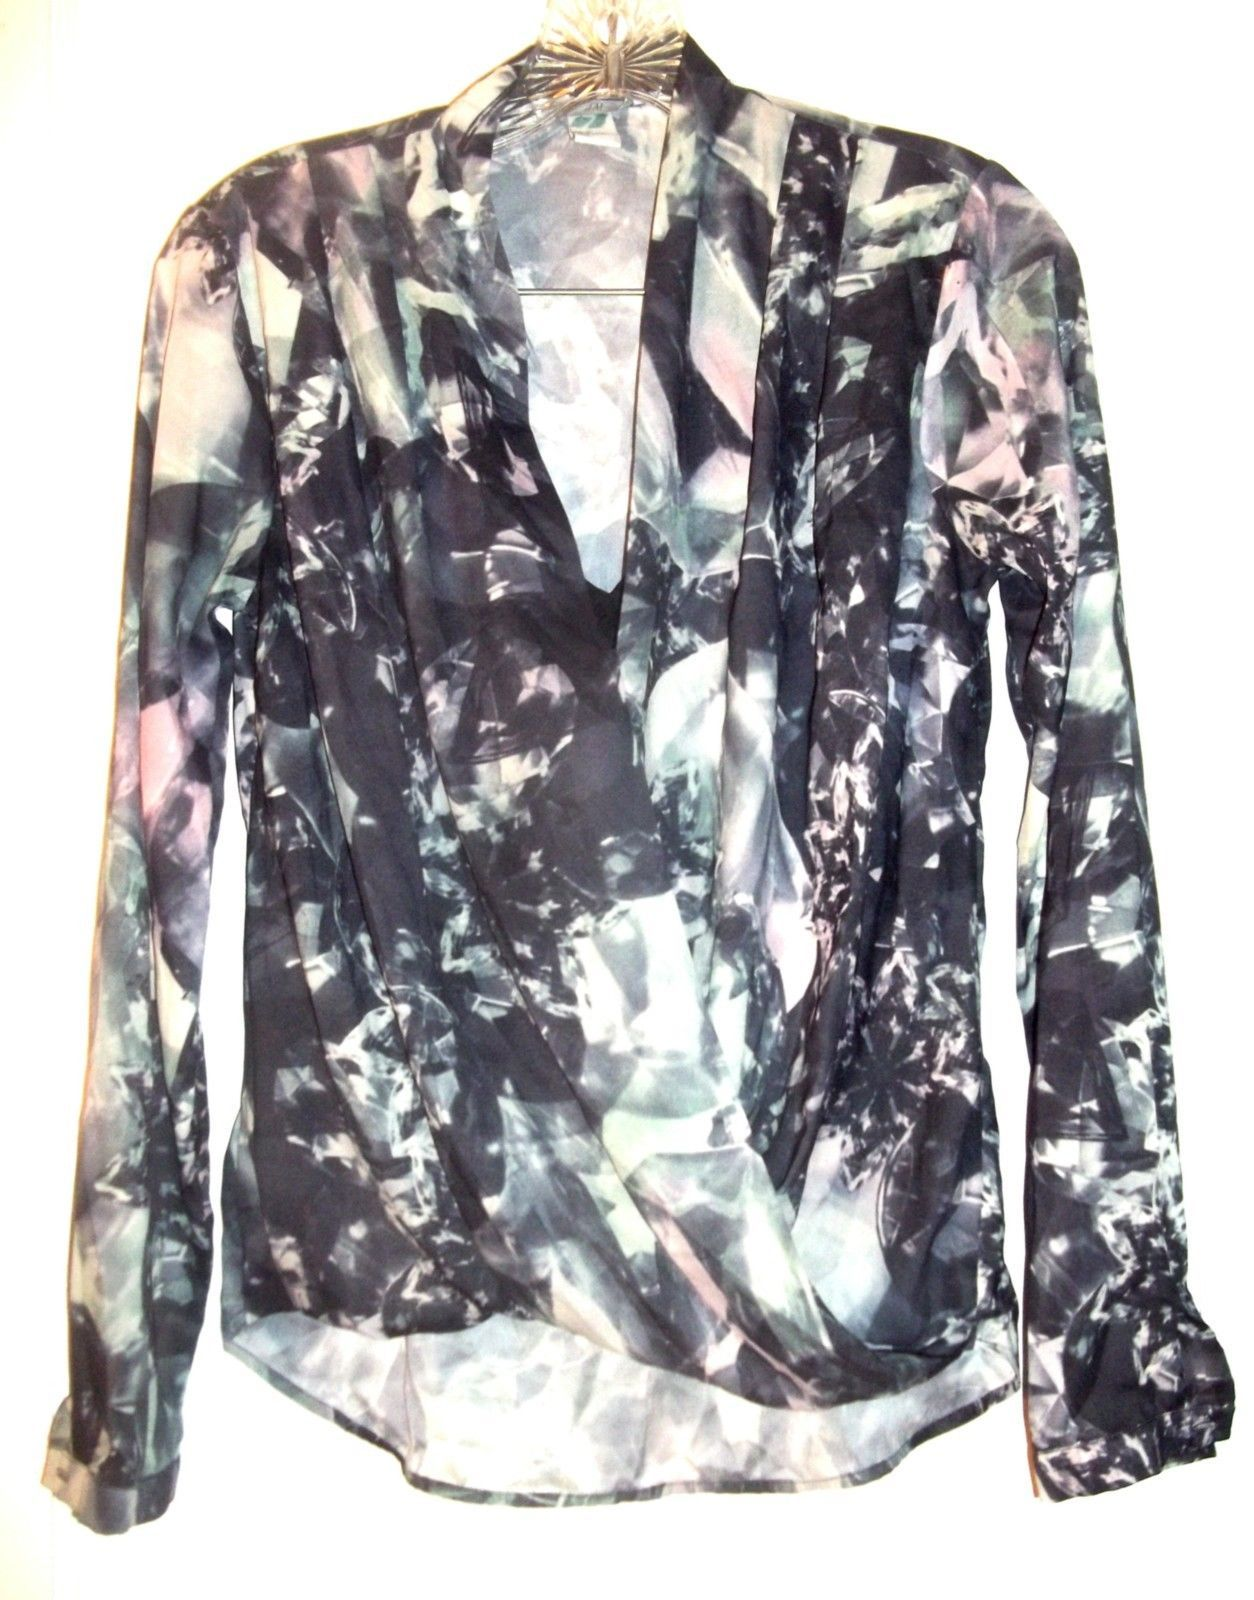 Size 6 - H&M Black & Gray Double Top w/attached Sheer Black Insert - $23.74